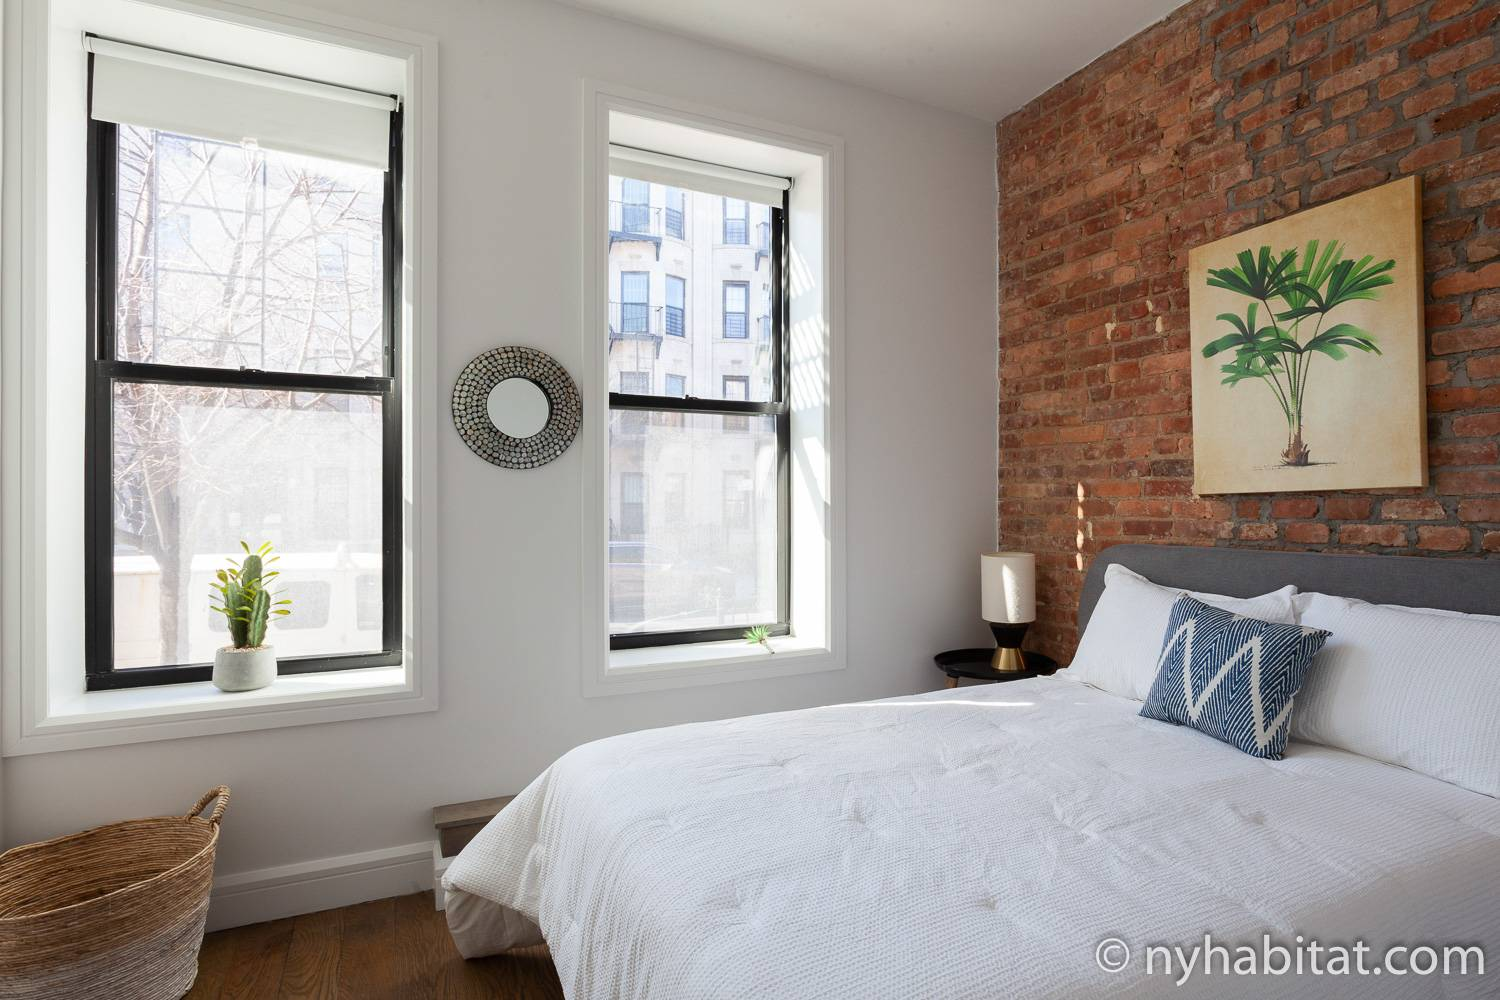 Image of bedroom in NY-17871 with full-sized bed and artwork.